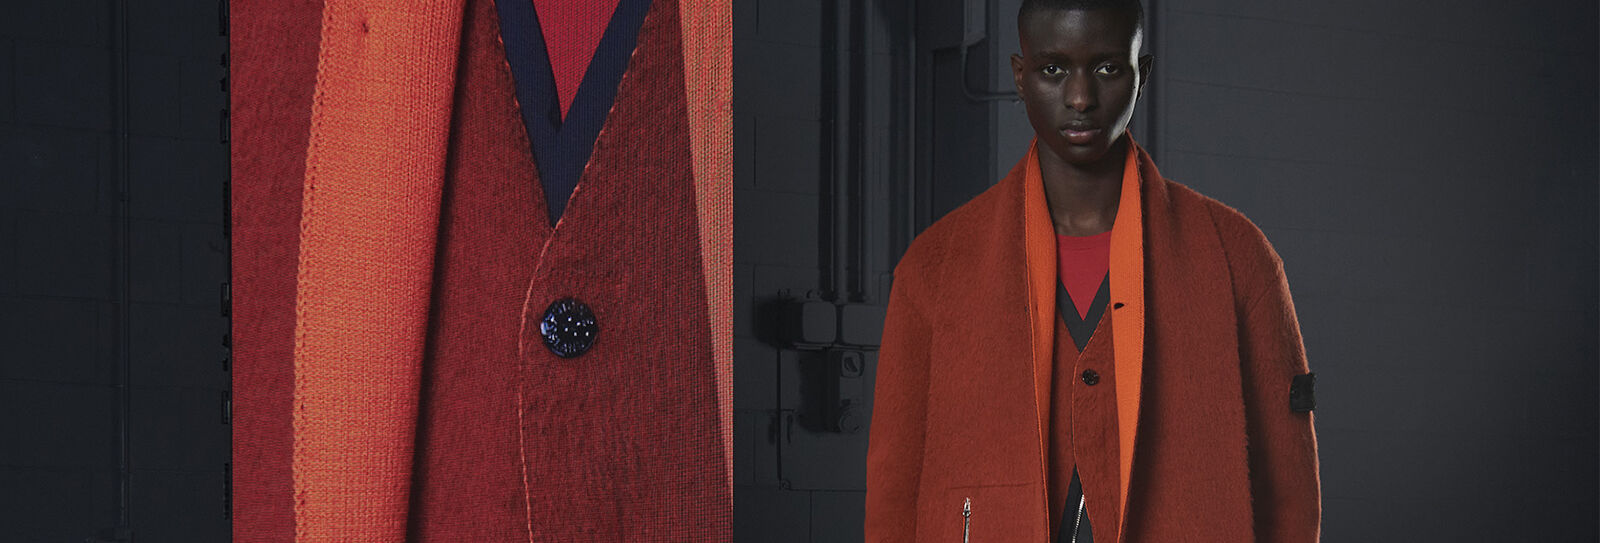 Model wearing a red and blue sweater under a two-tone orange, buttoned coat beside an extreme close-up of button.